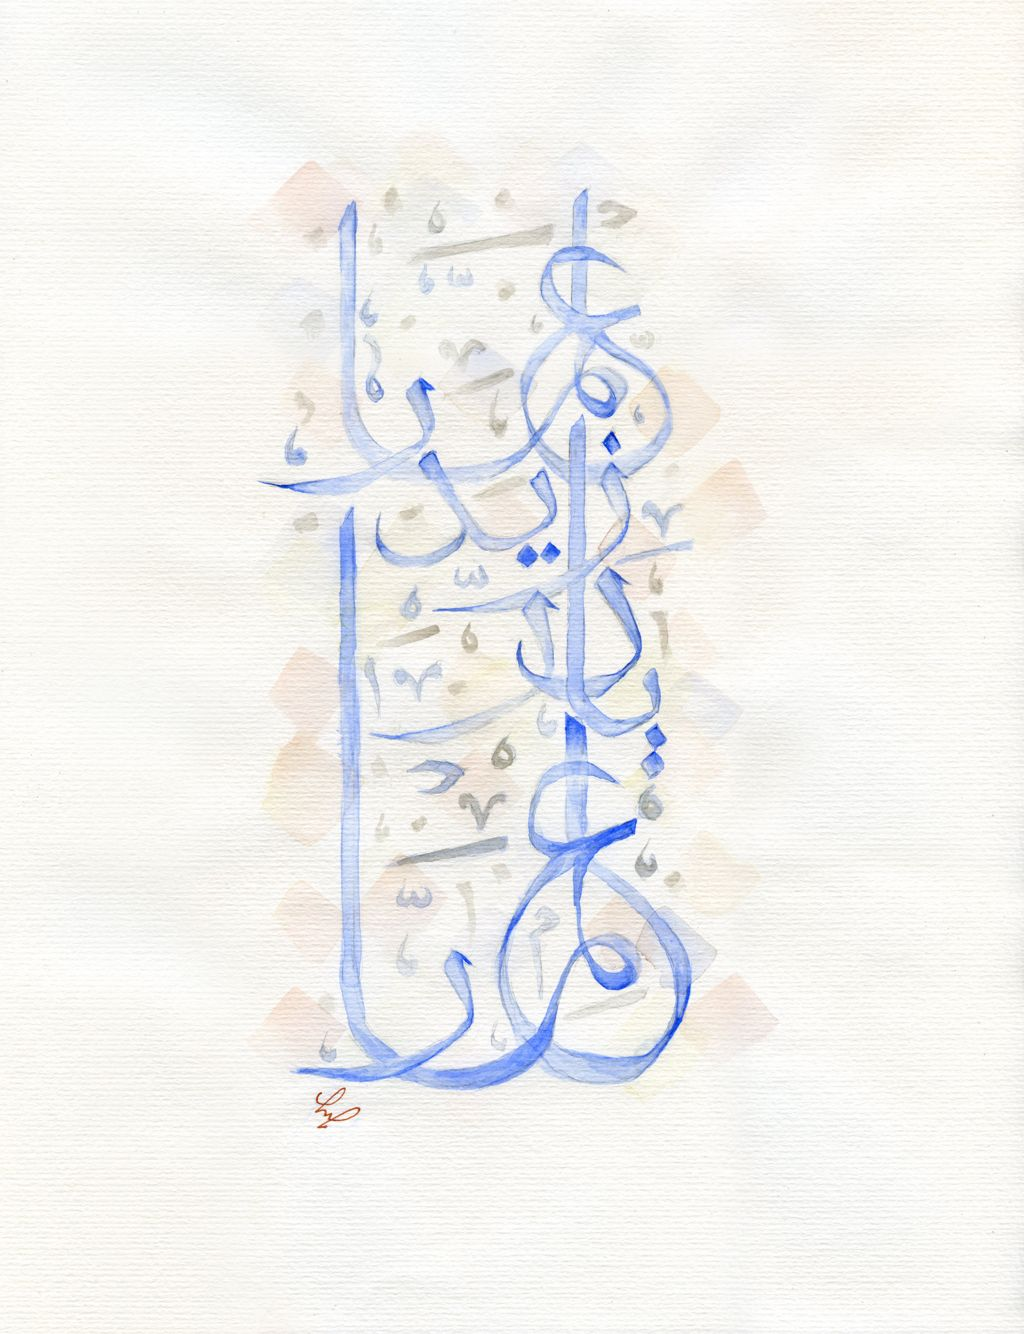 Watercolor Arabic Calligraphy Of عمار يادار زايد عمار